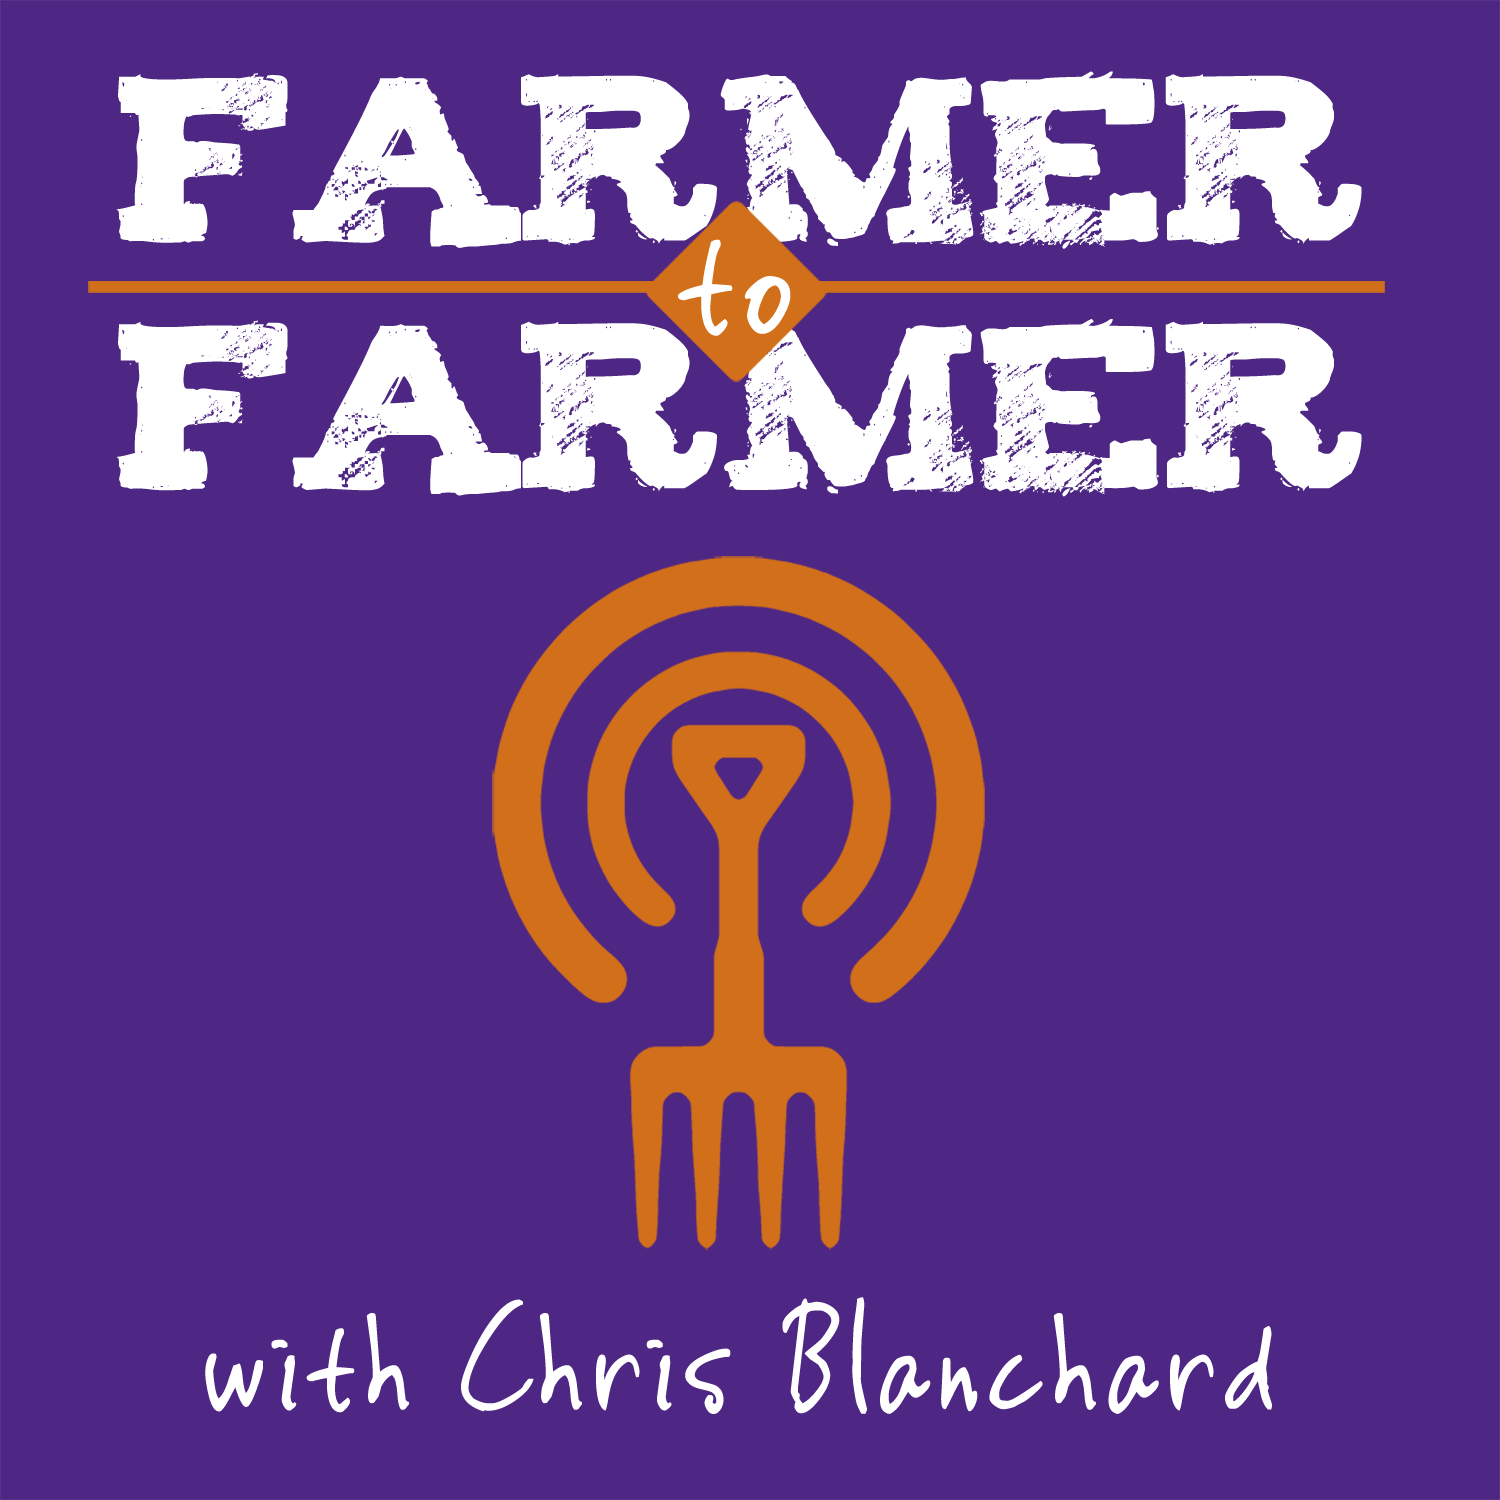 171: Caroline Pam and Tim Wilcox of Kitchen Garden Farm on Scaling Up, Value-Added Products, and Wholesale Marketing